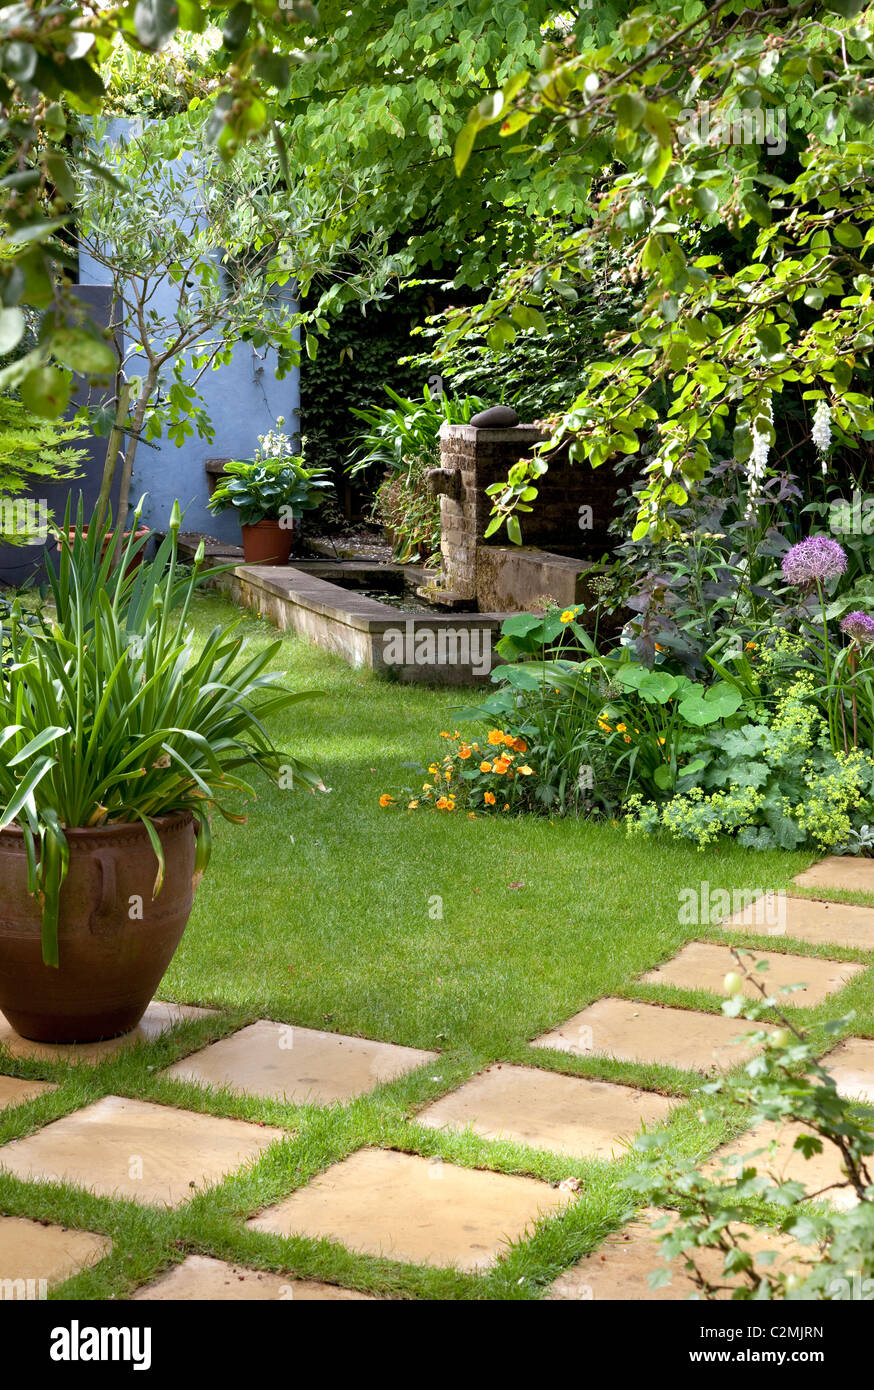 Suburban Garden. Agapanthus in large pot on checkerboard stone and grass paving - Stock Image